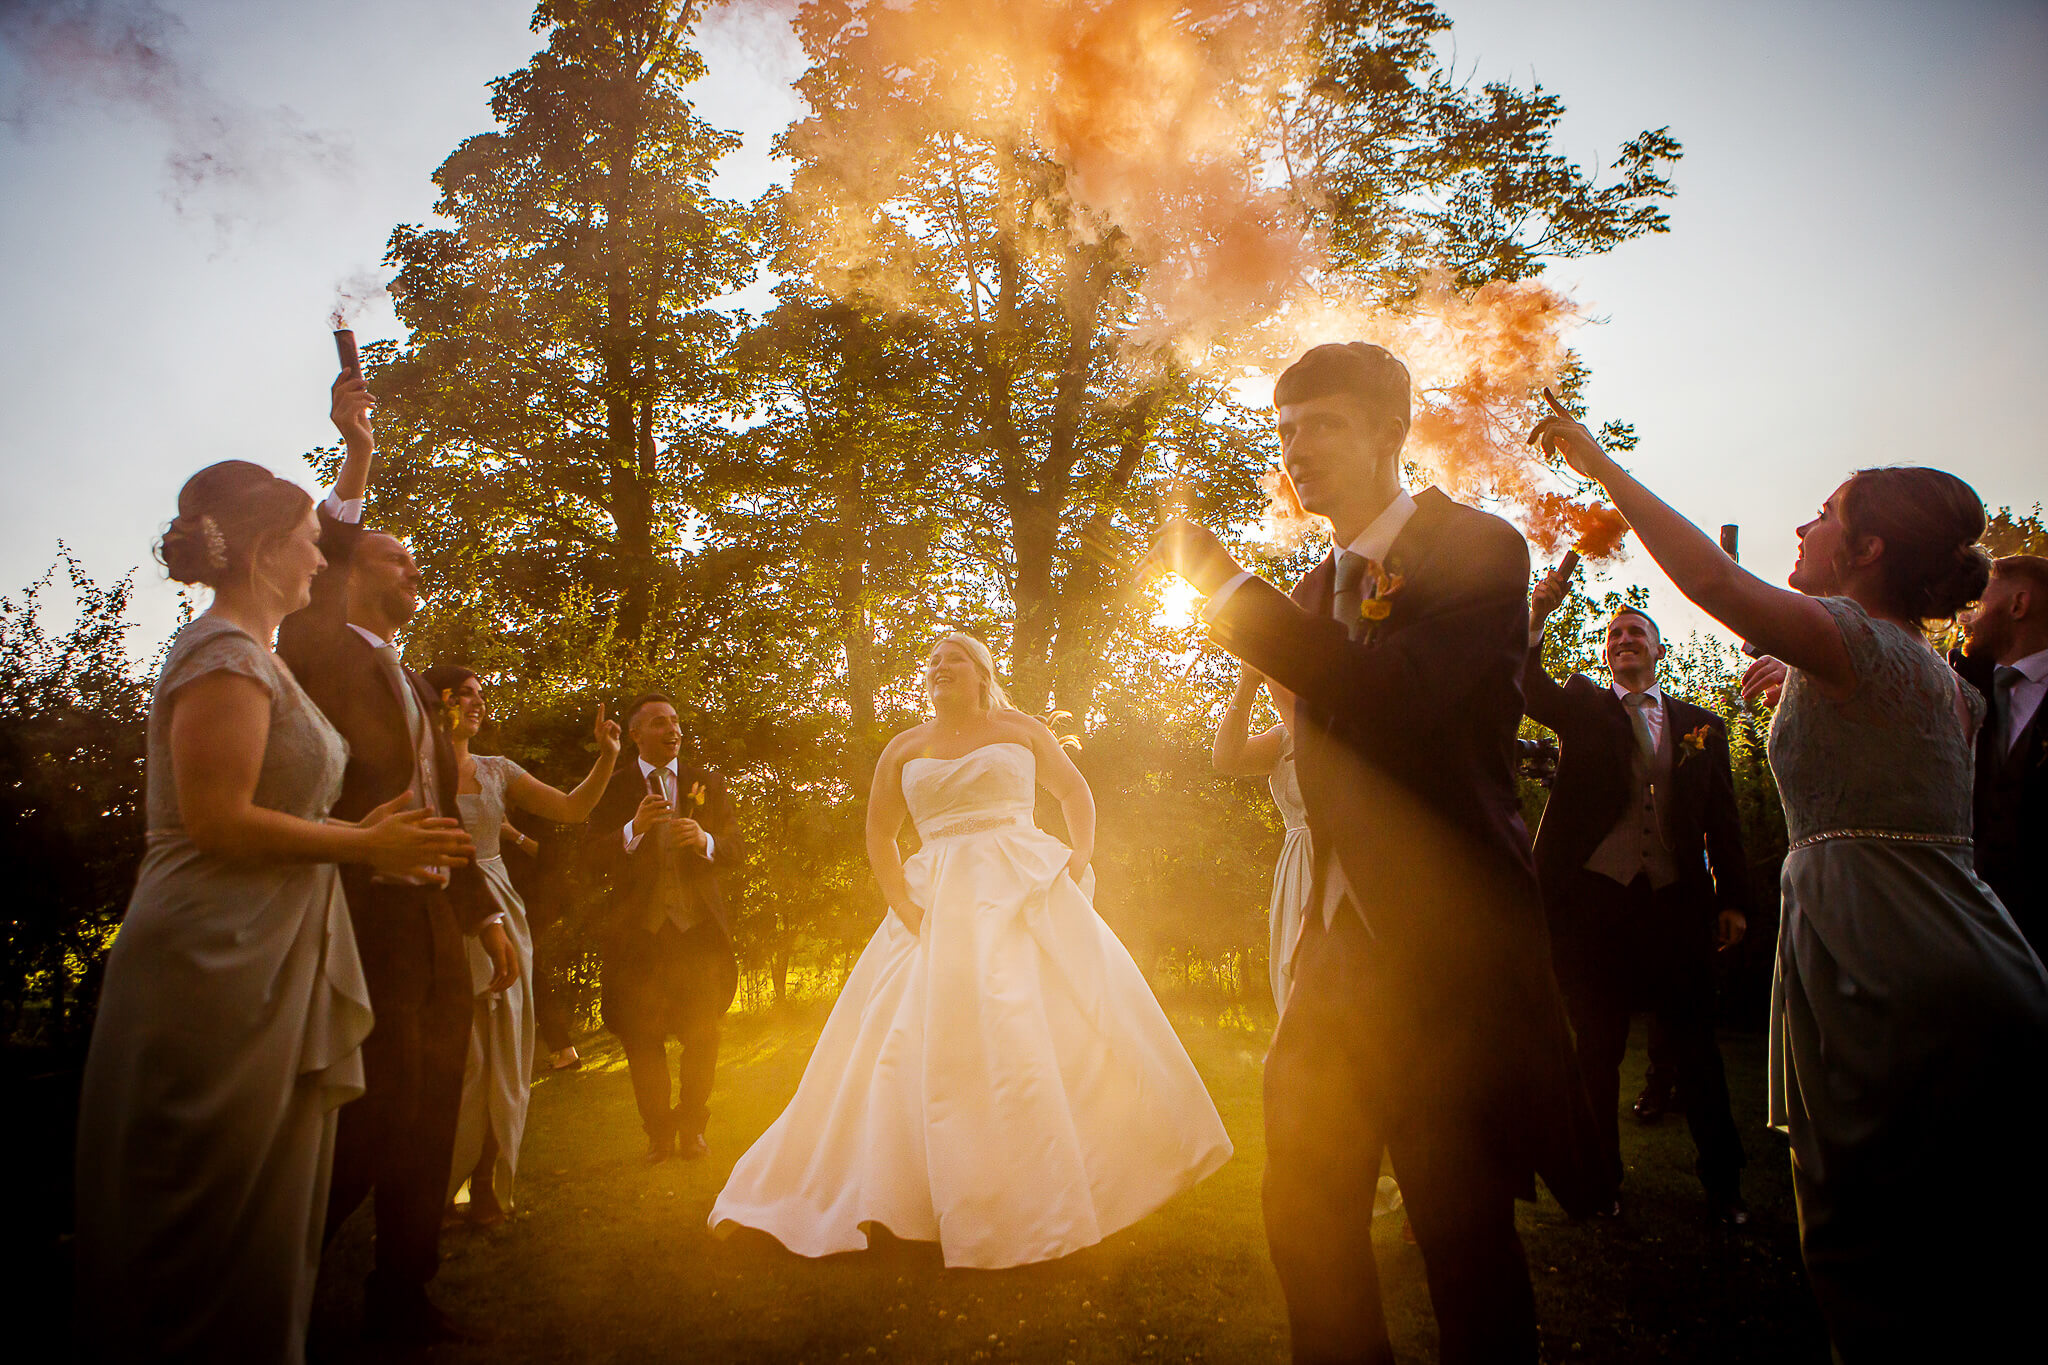 best-wedding-photographers-uk-europe-stanbury-photography-115